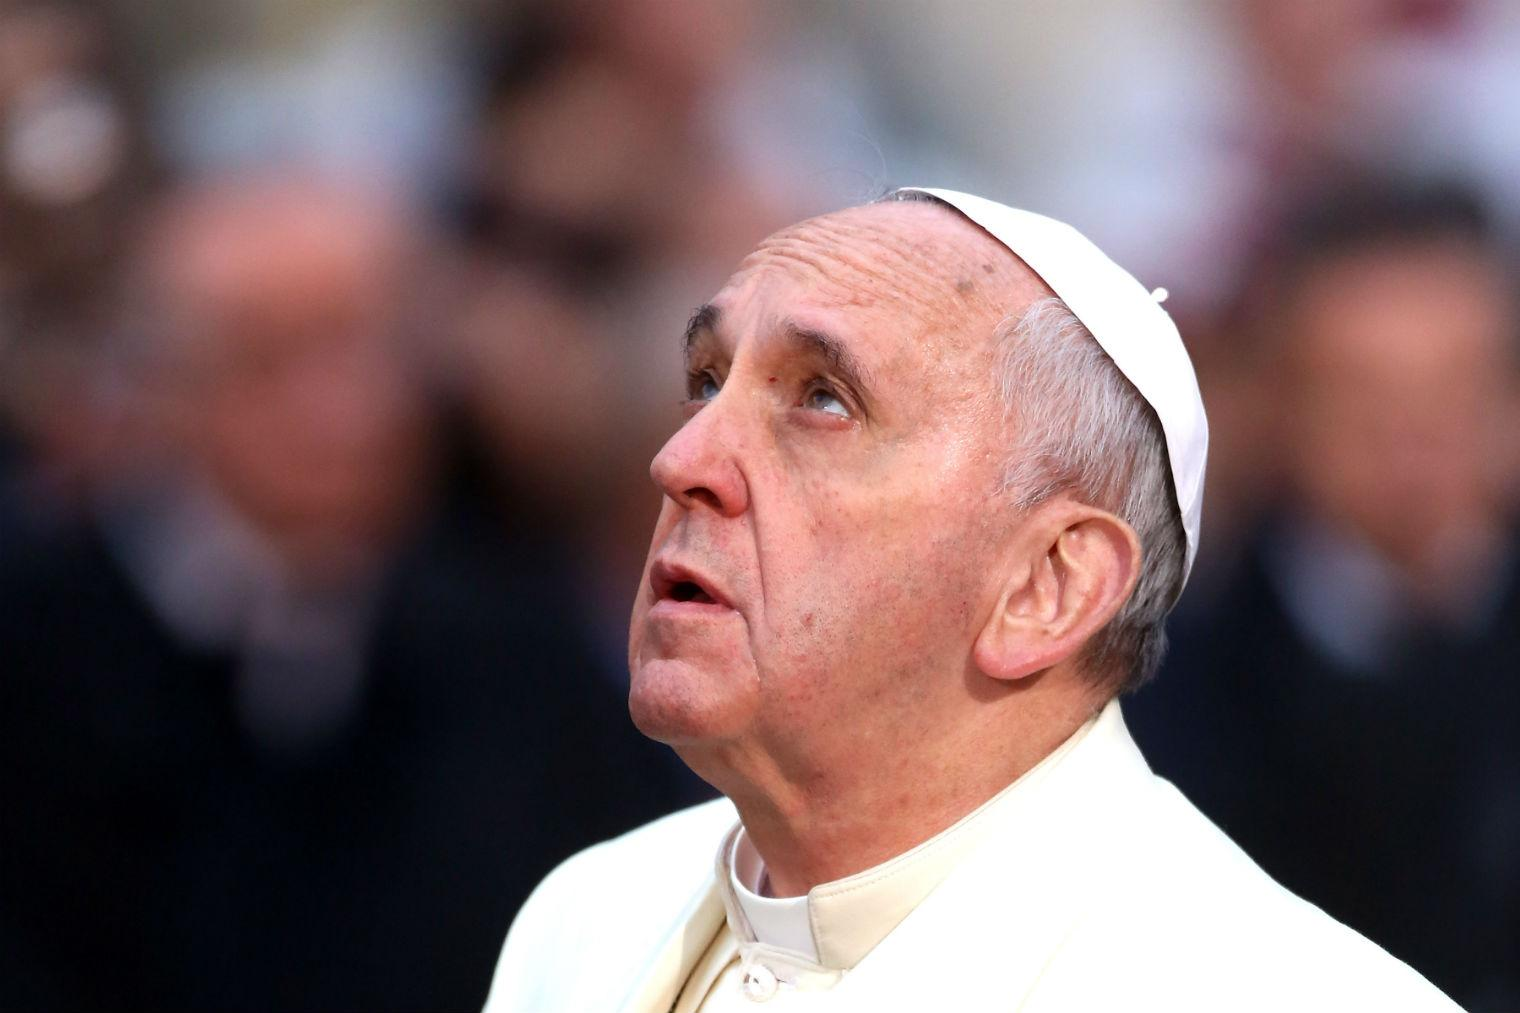 Pope Francis: Christmas this year will be a 'charade'